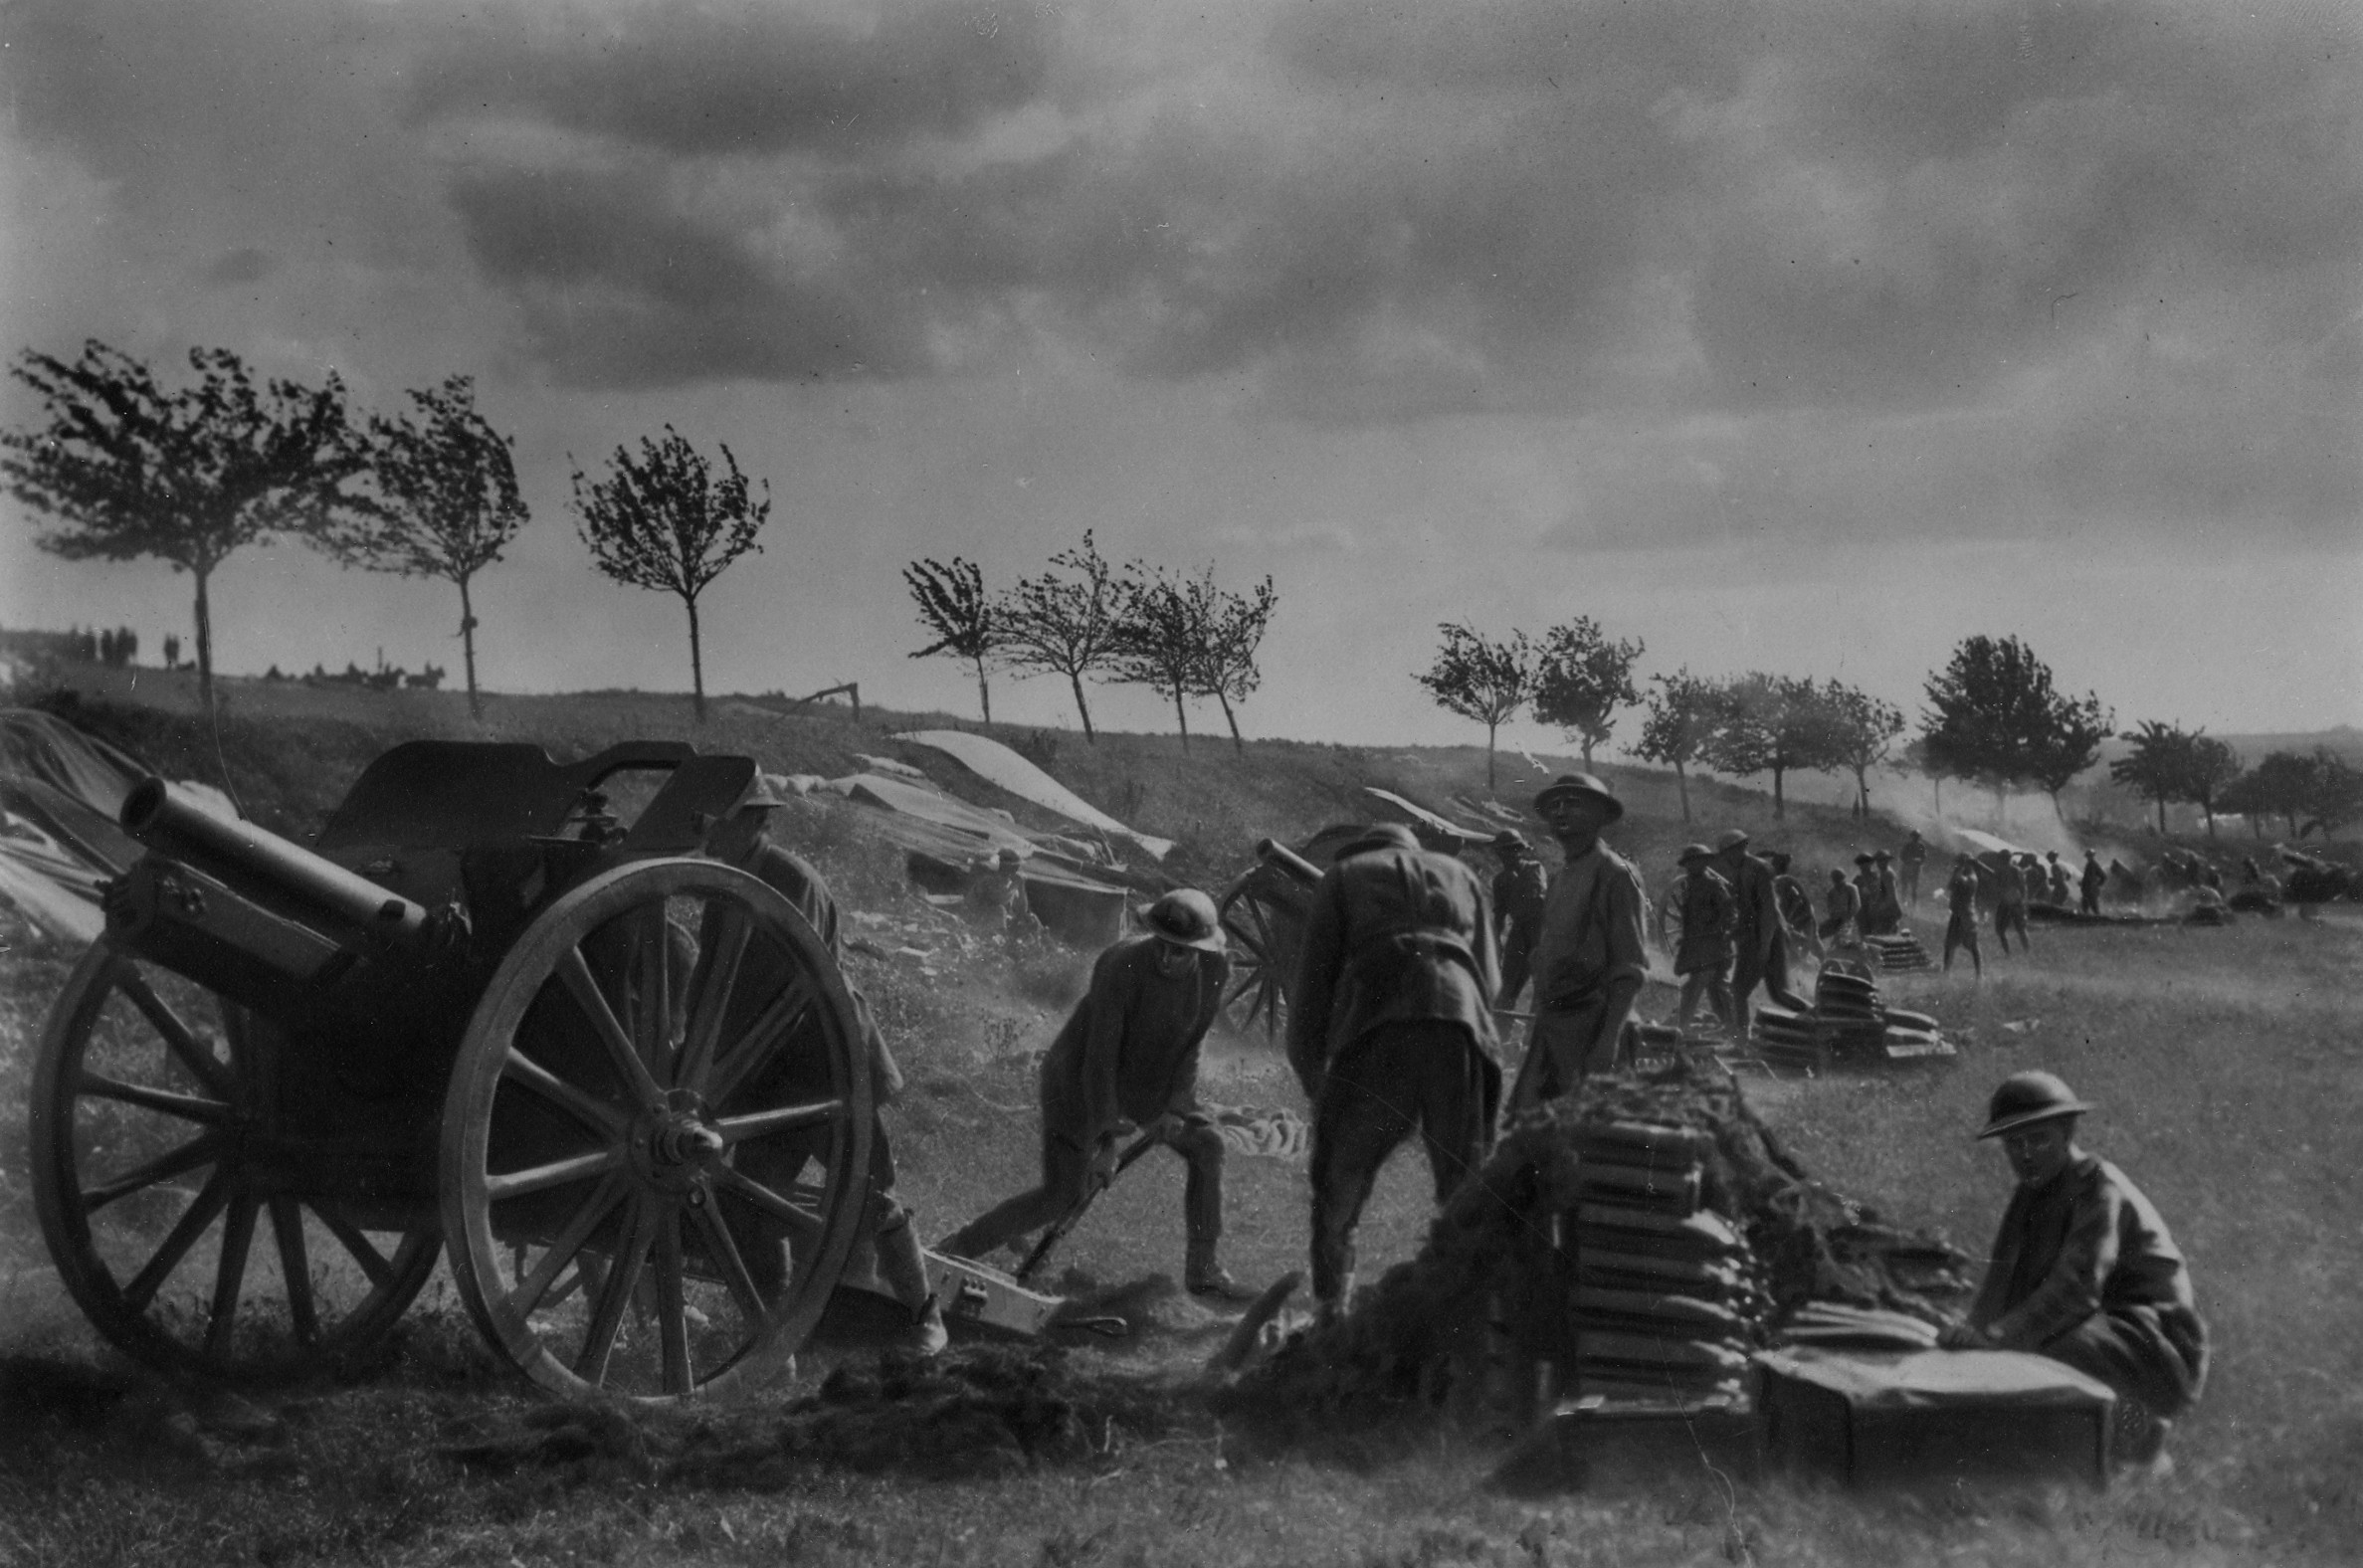 Members of the New Zealand Field Artillery Battery in action a few minutes after taking up their new position at Grevillers during the Battle of Amiens on 8 August. Note the shells stacked on the ground.